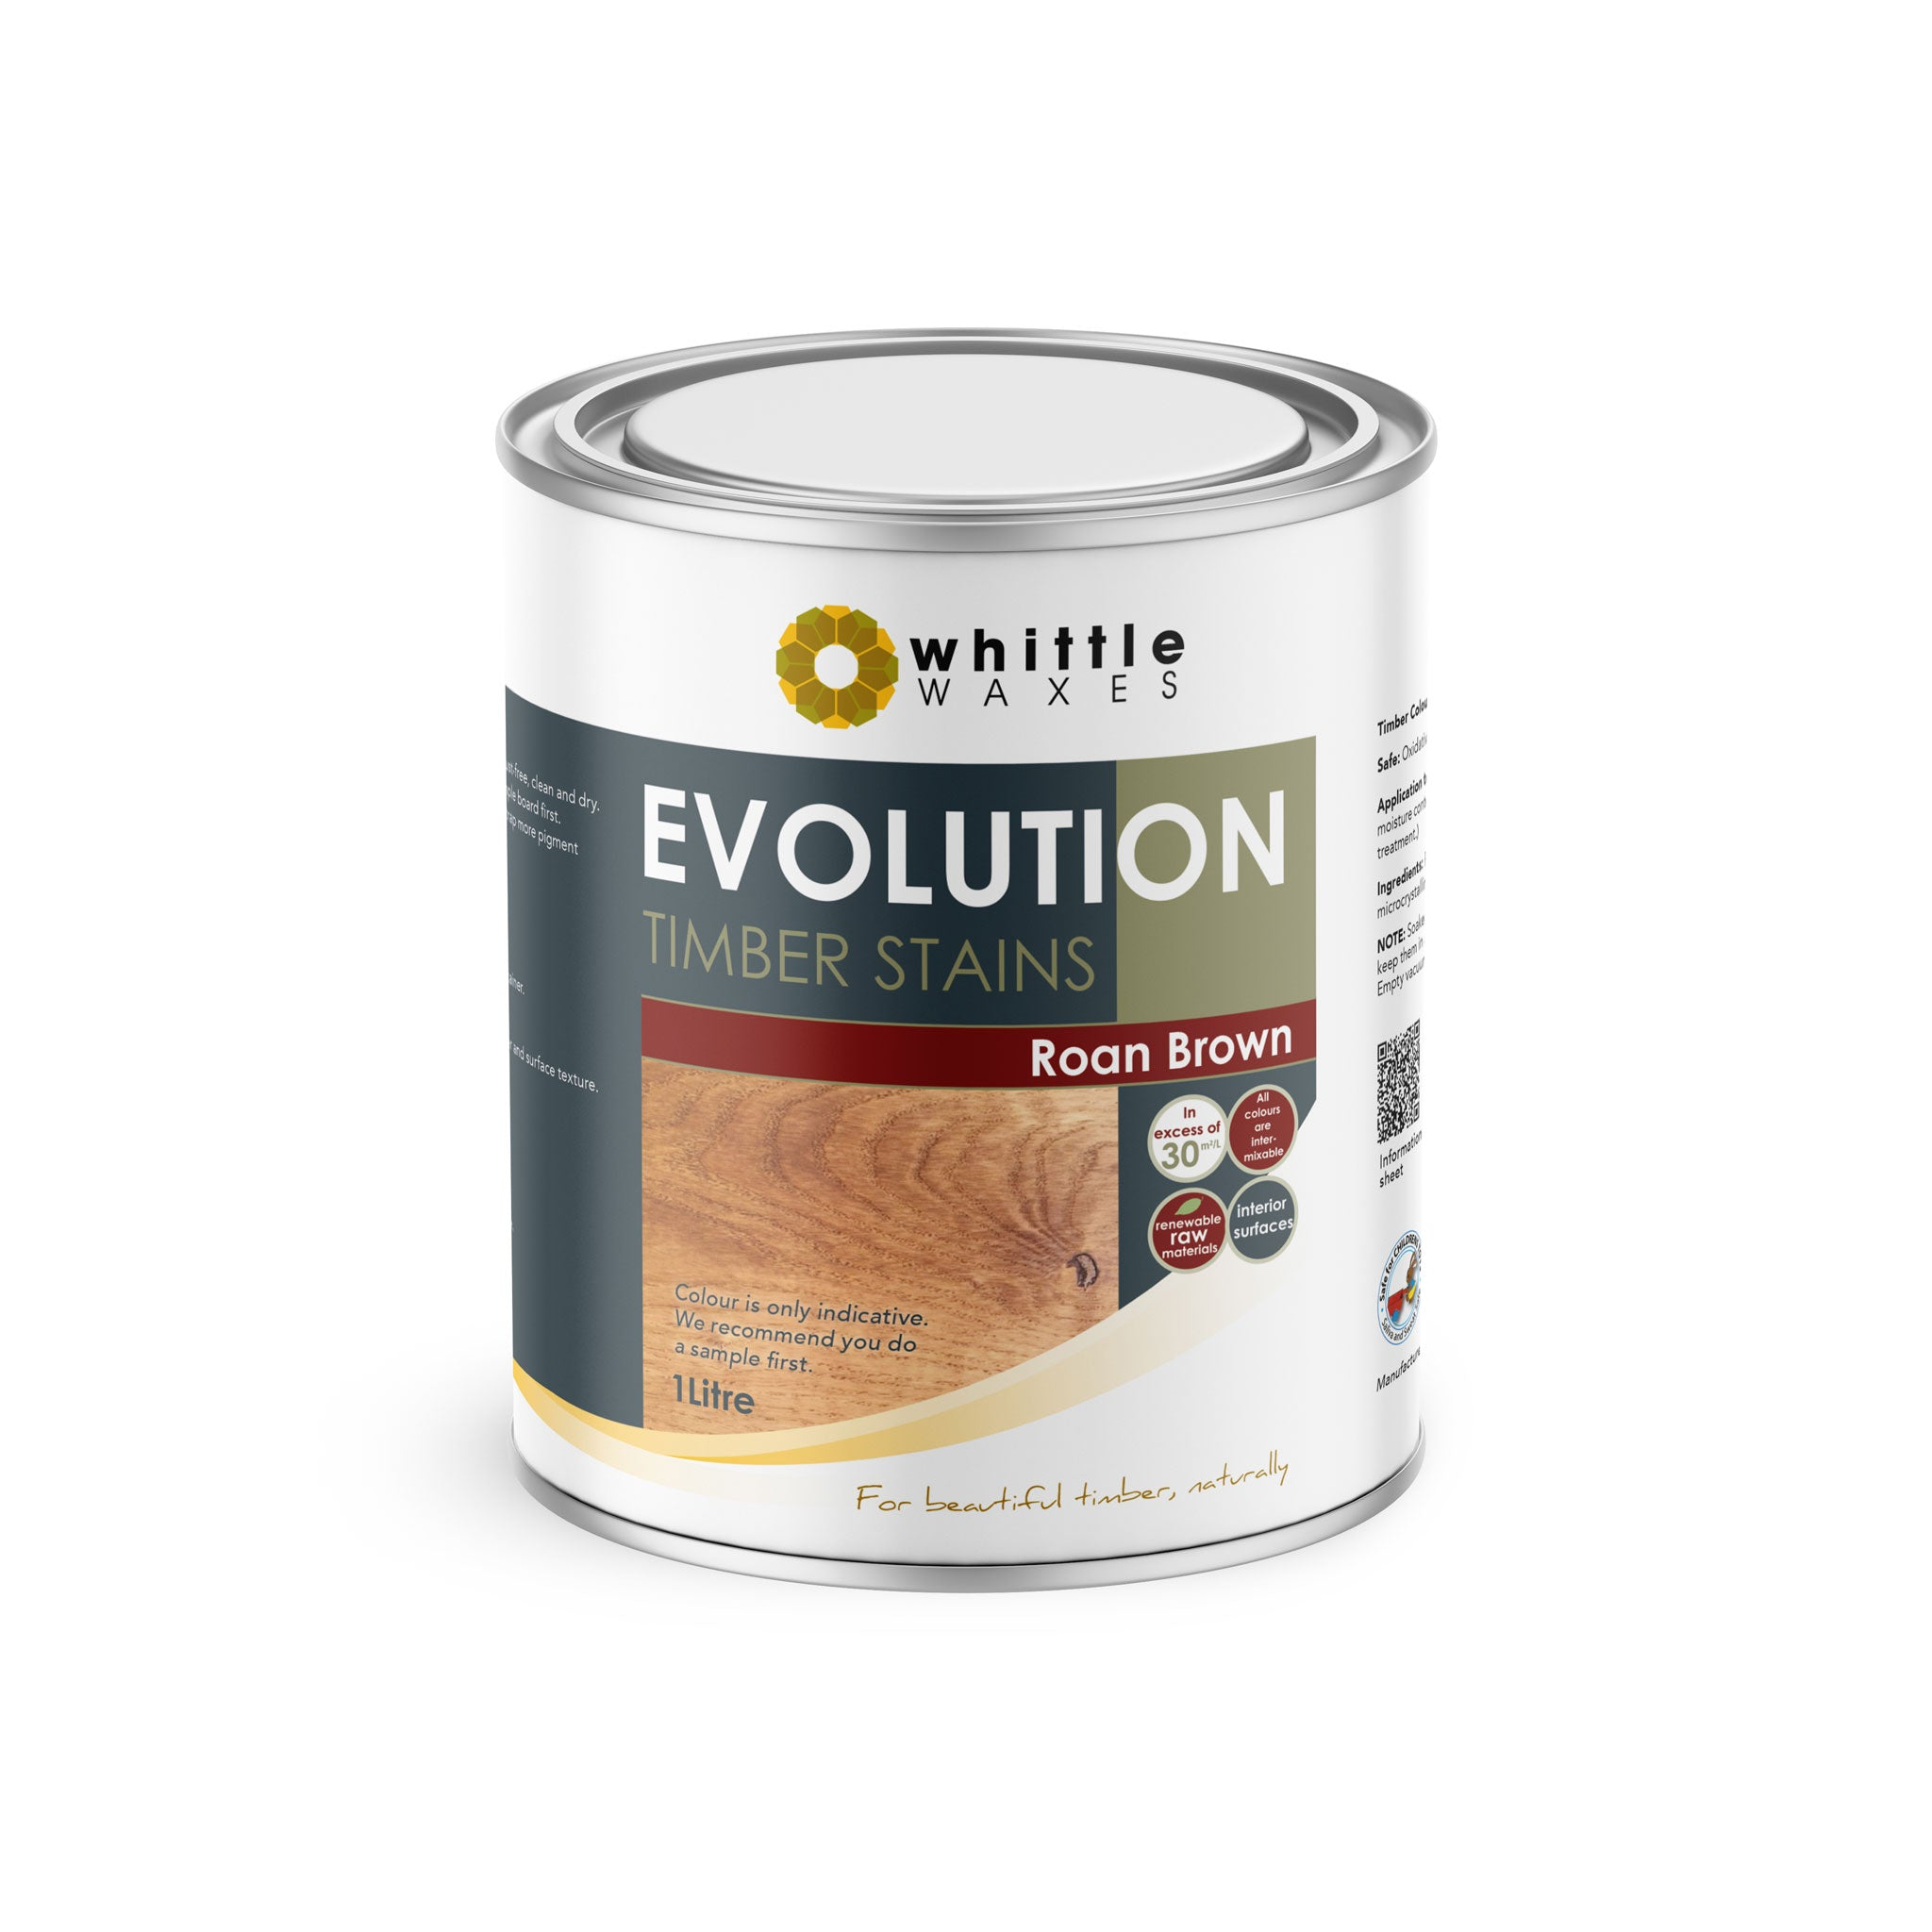 Whittle Waxes Evolution Colours (Roan Brown) - quality timber stain - 1 Litre